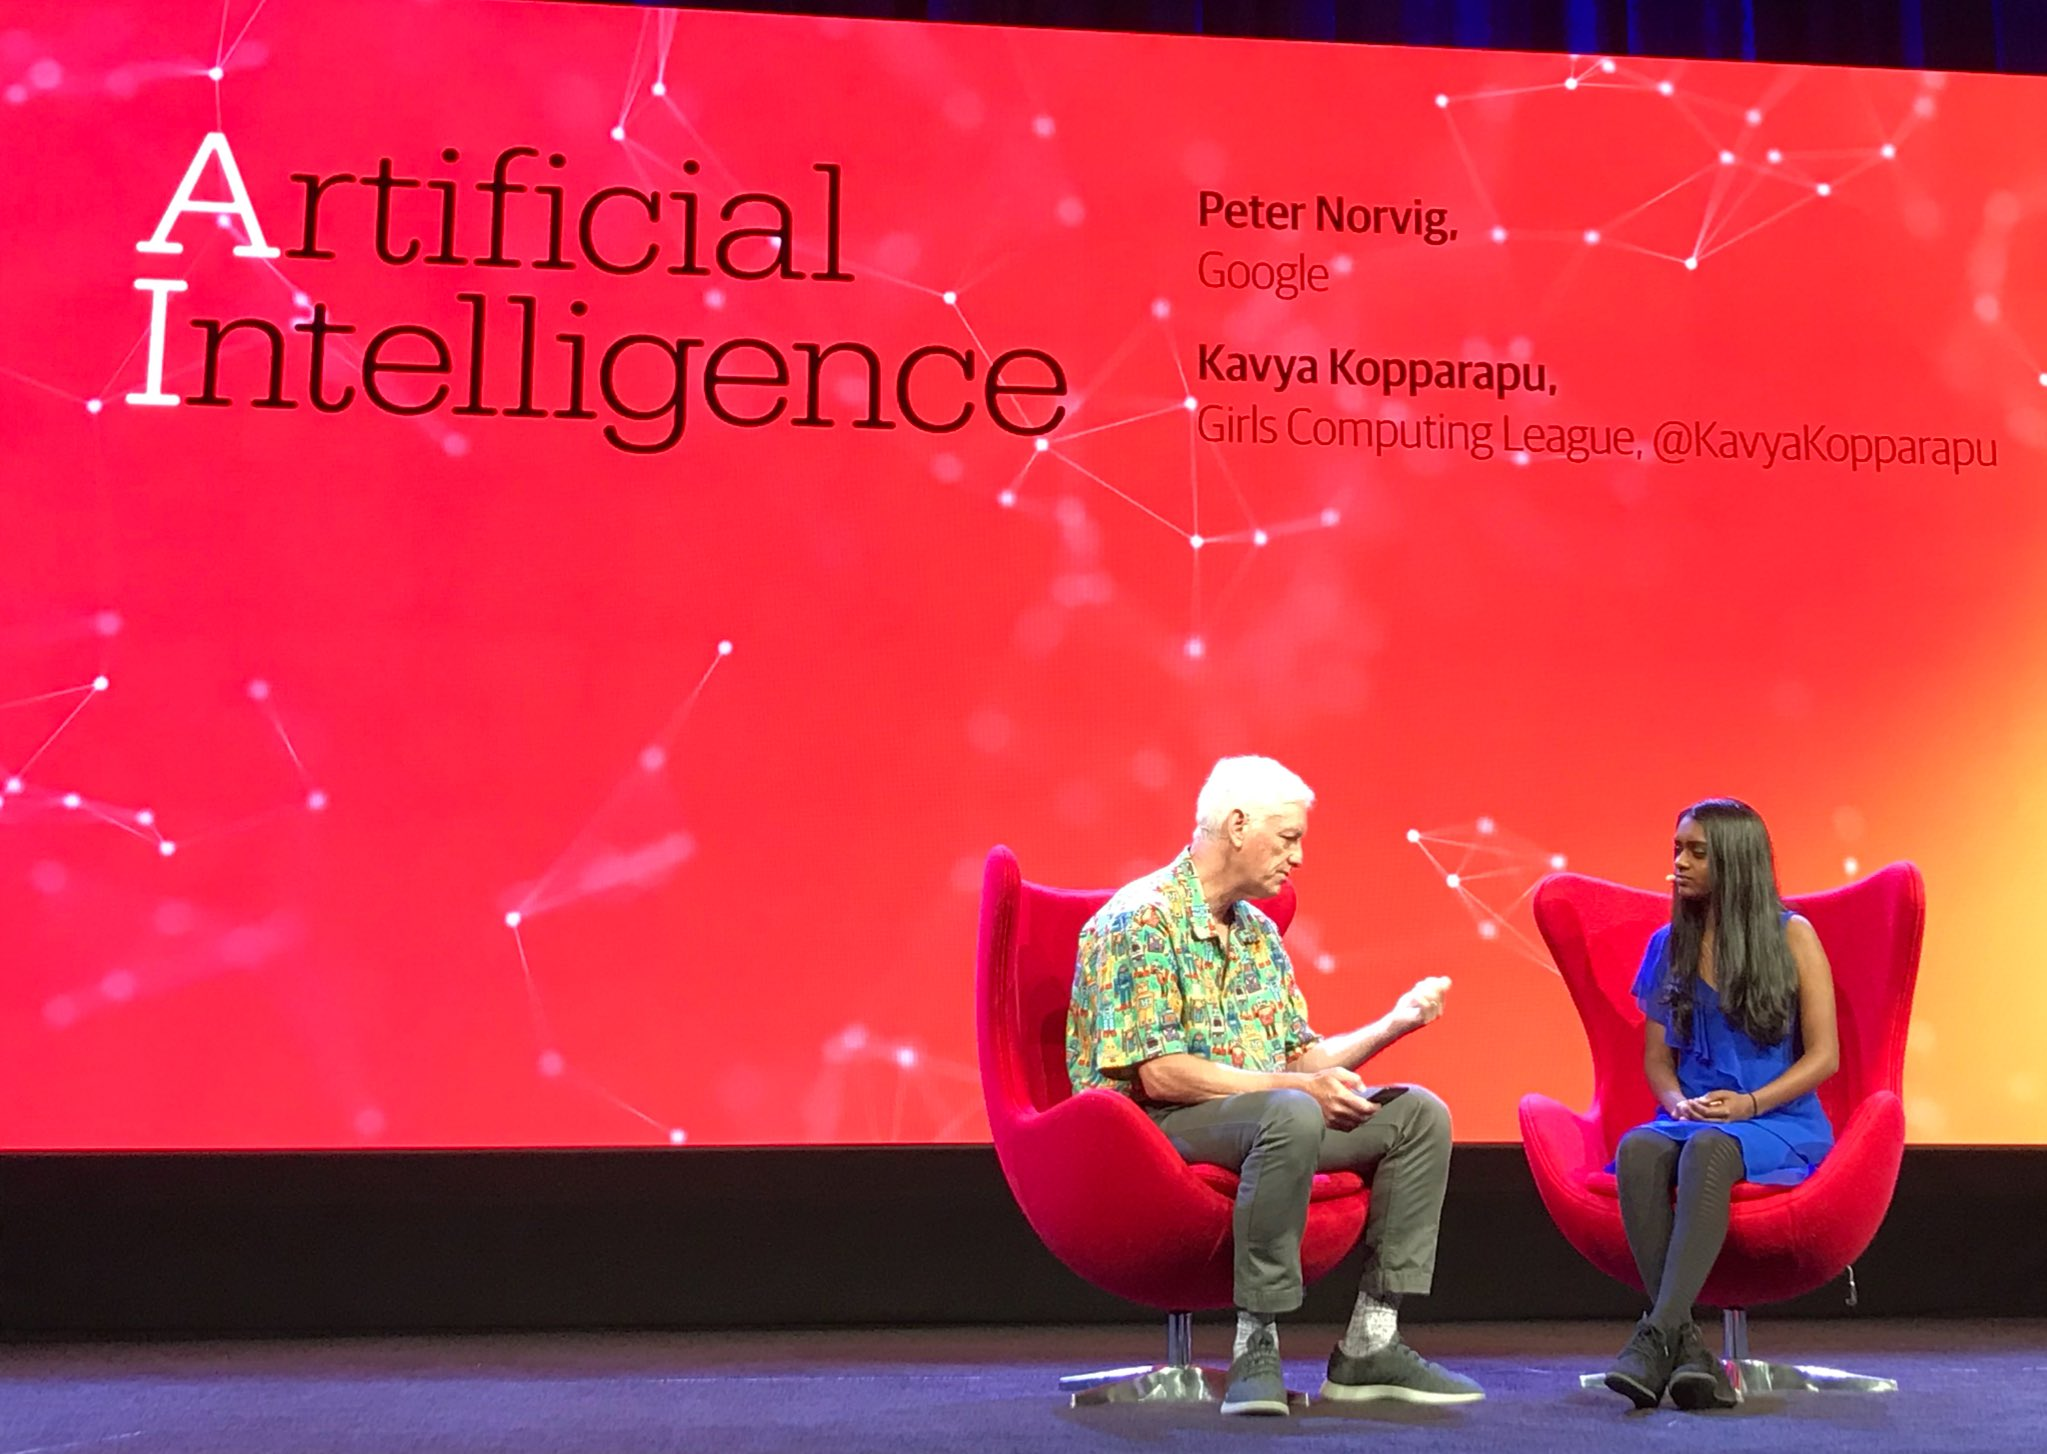 The AI Conference Keynote with Peter Norvig